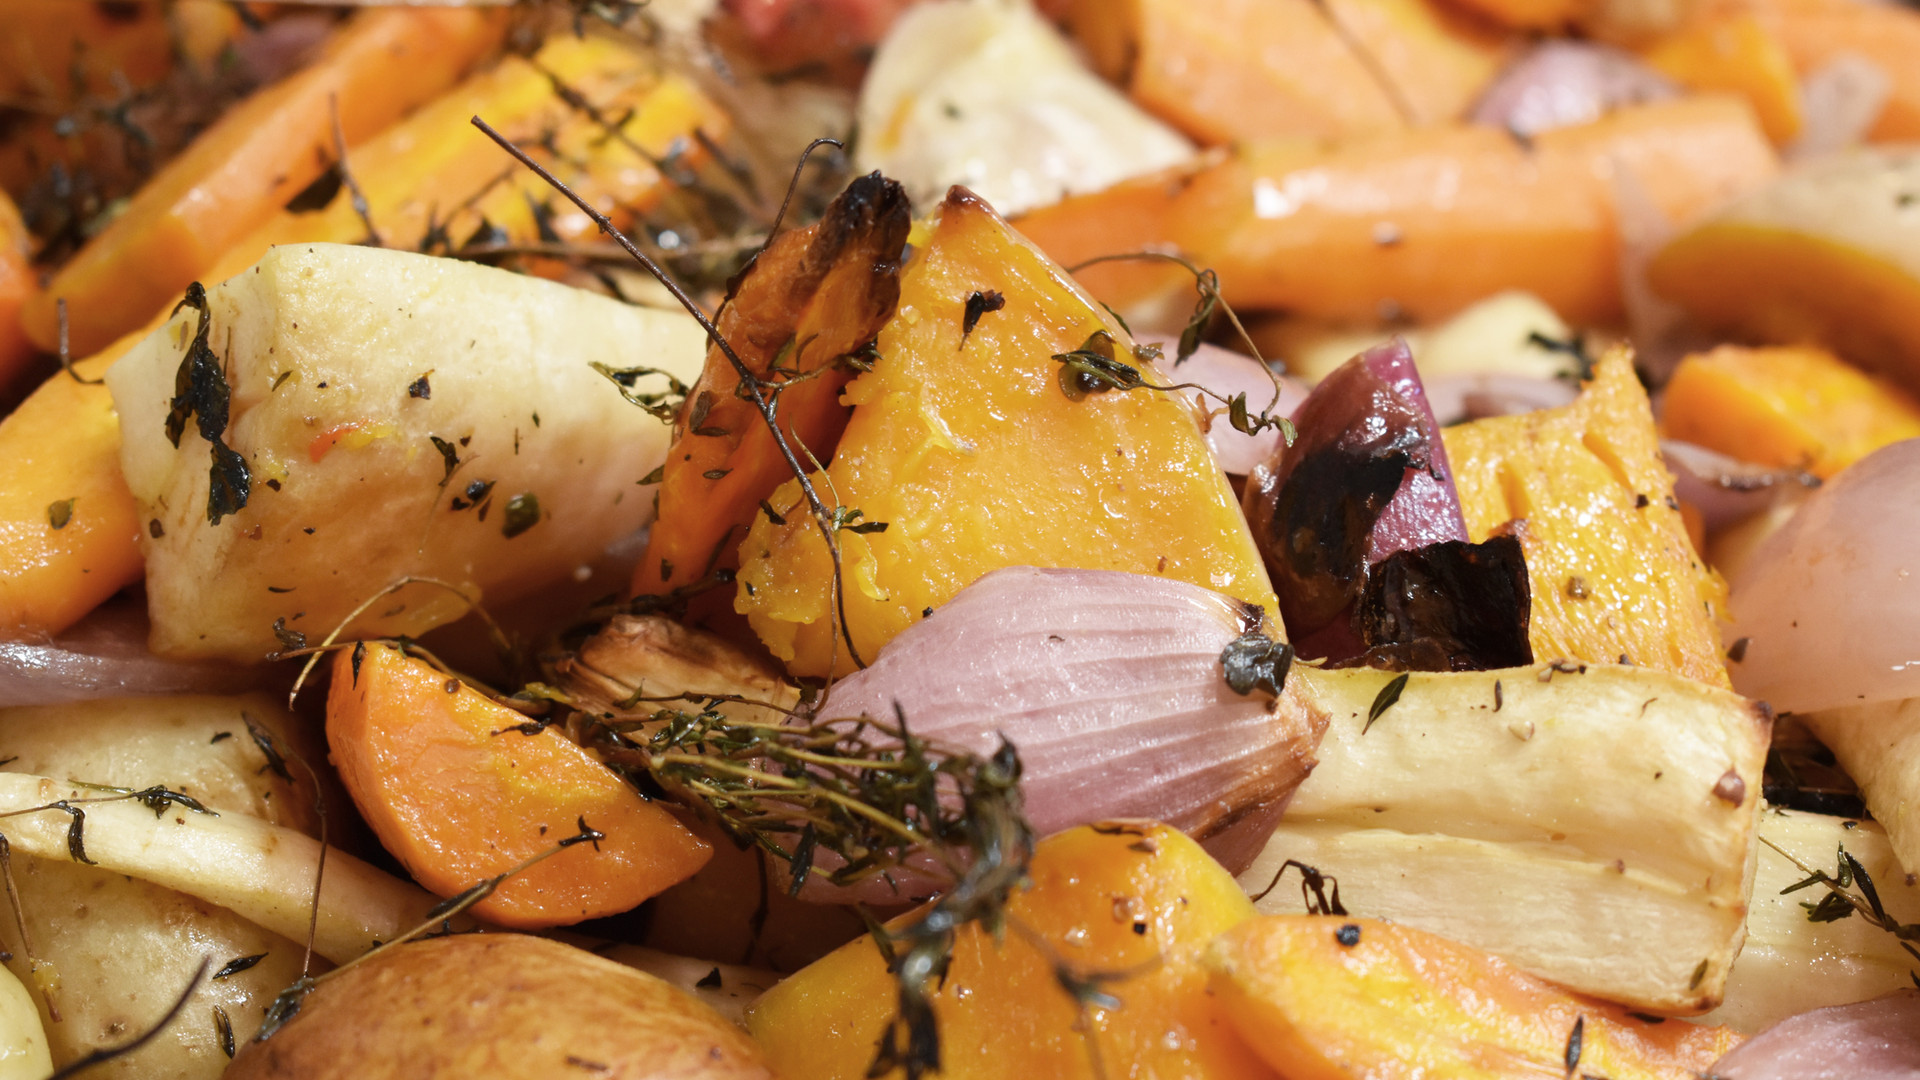 Autumn/Winter - Roasted Vegetables